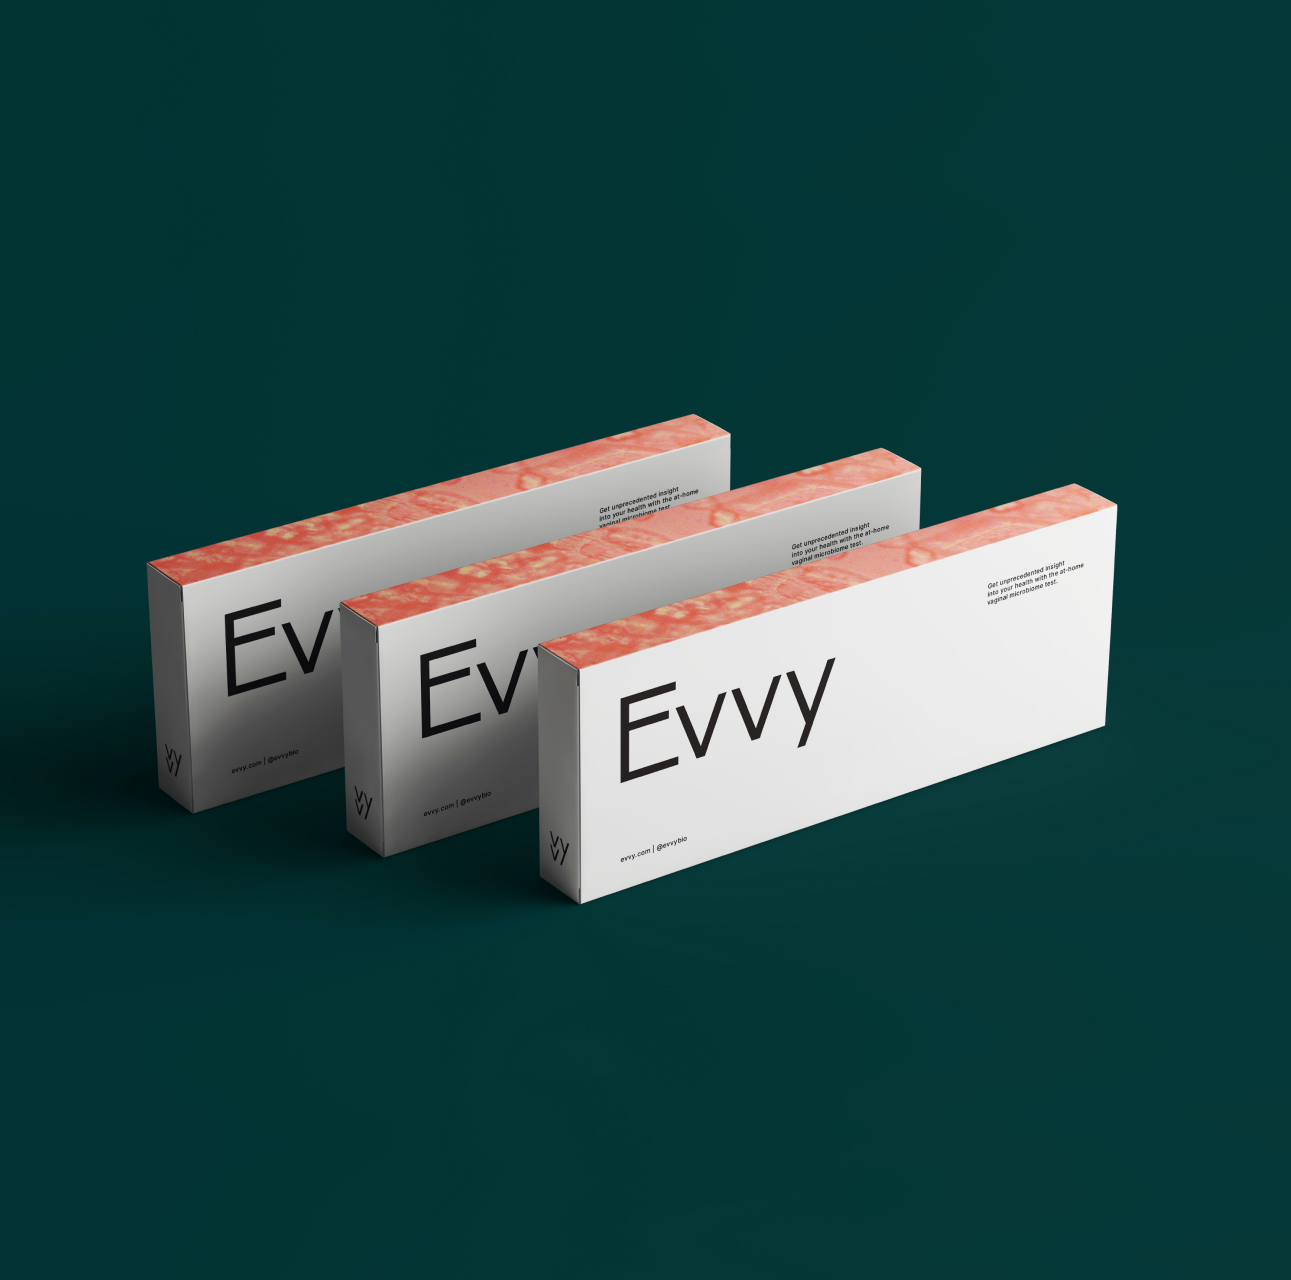 Three Evvy product boxes, housing the Evvy Vaginal Health Check